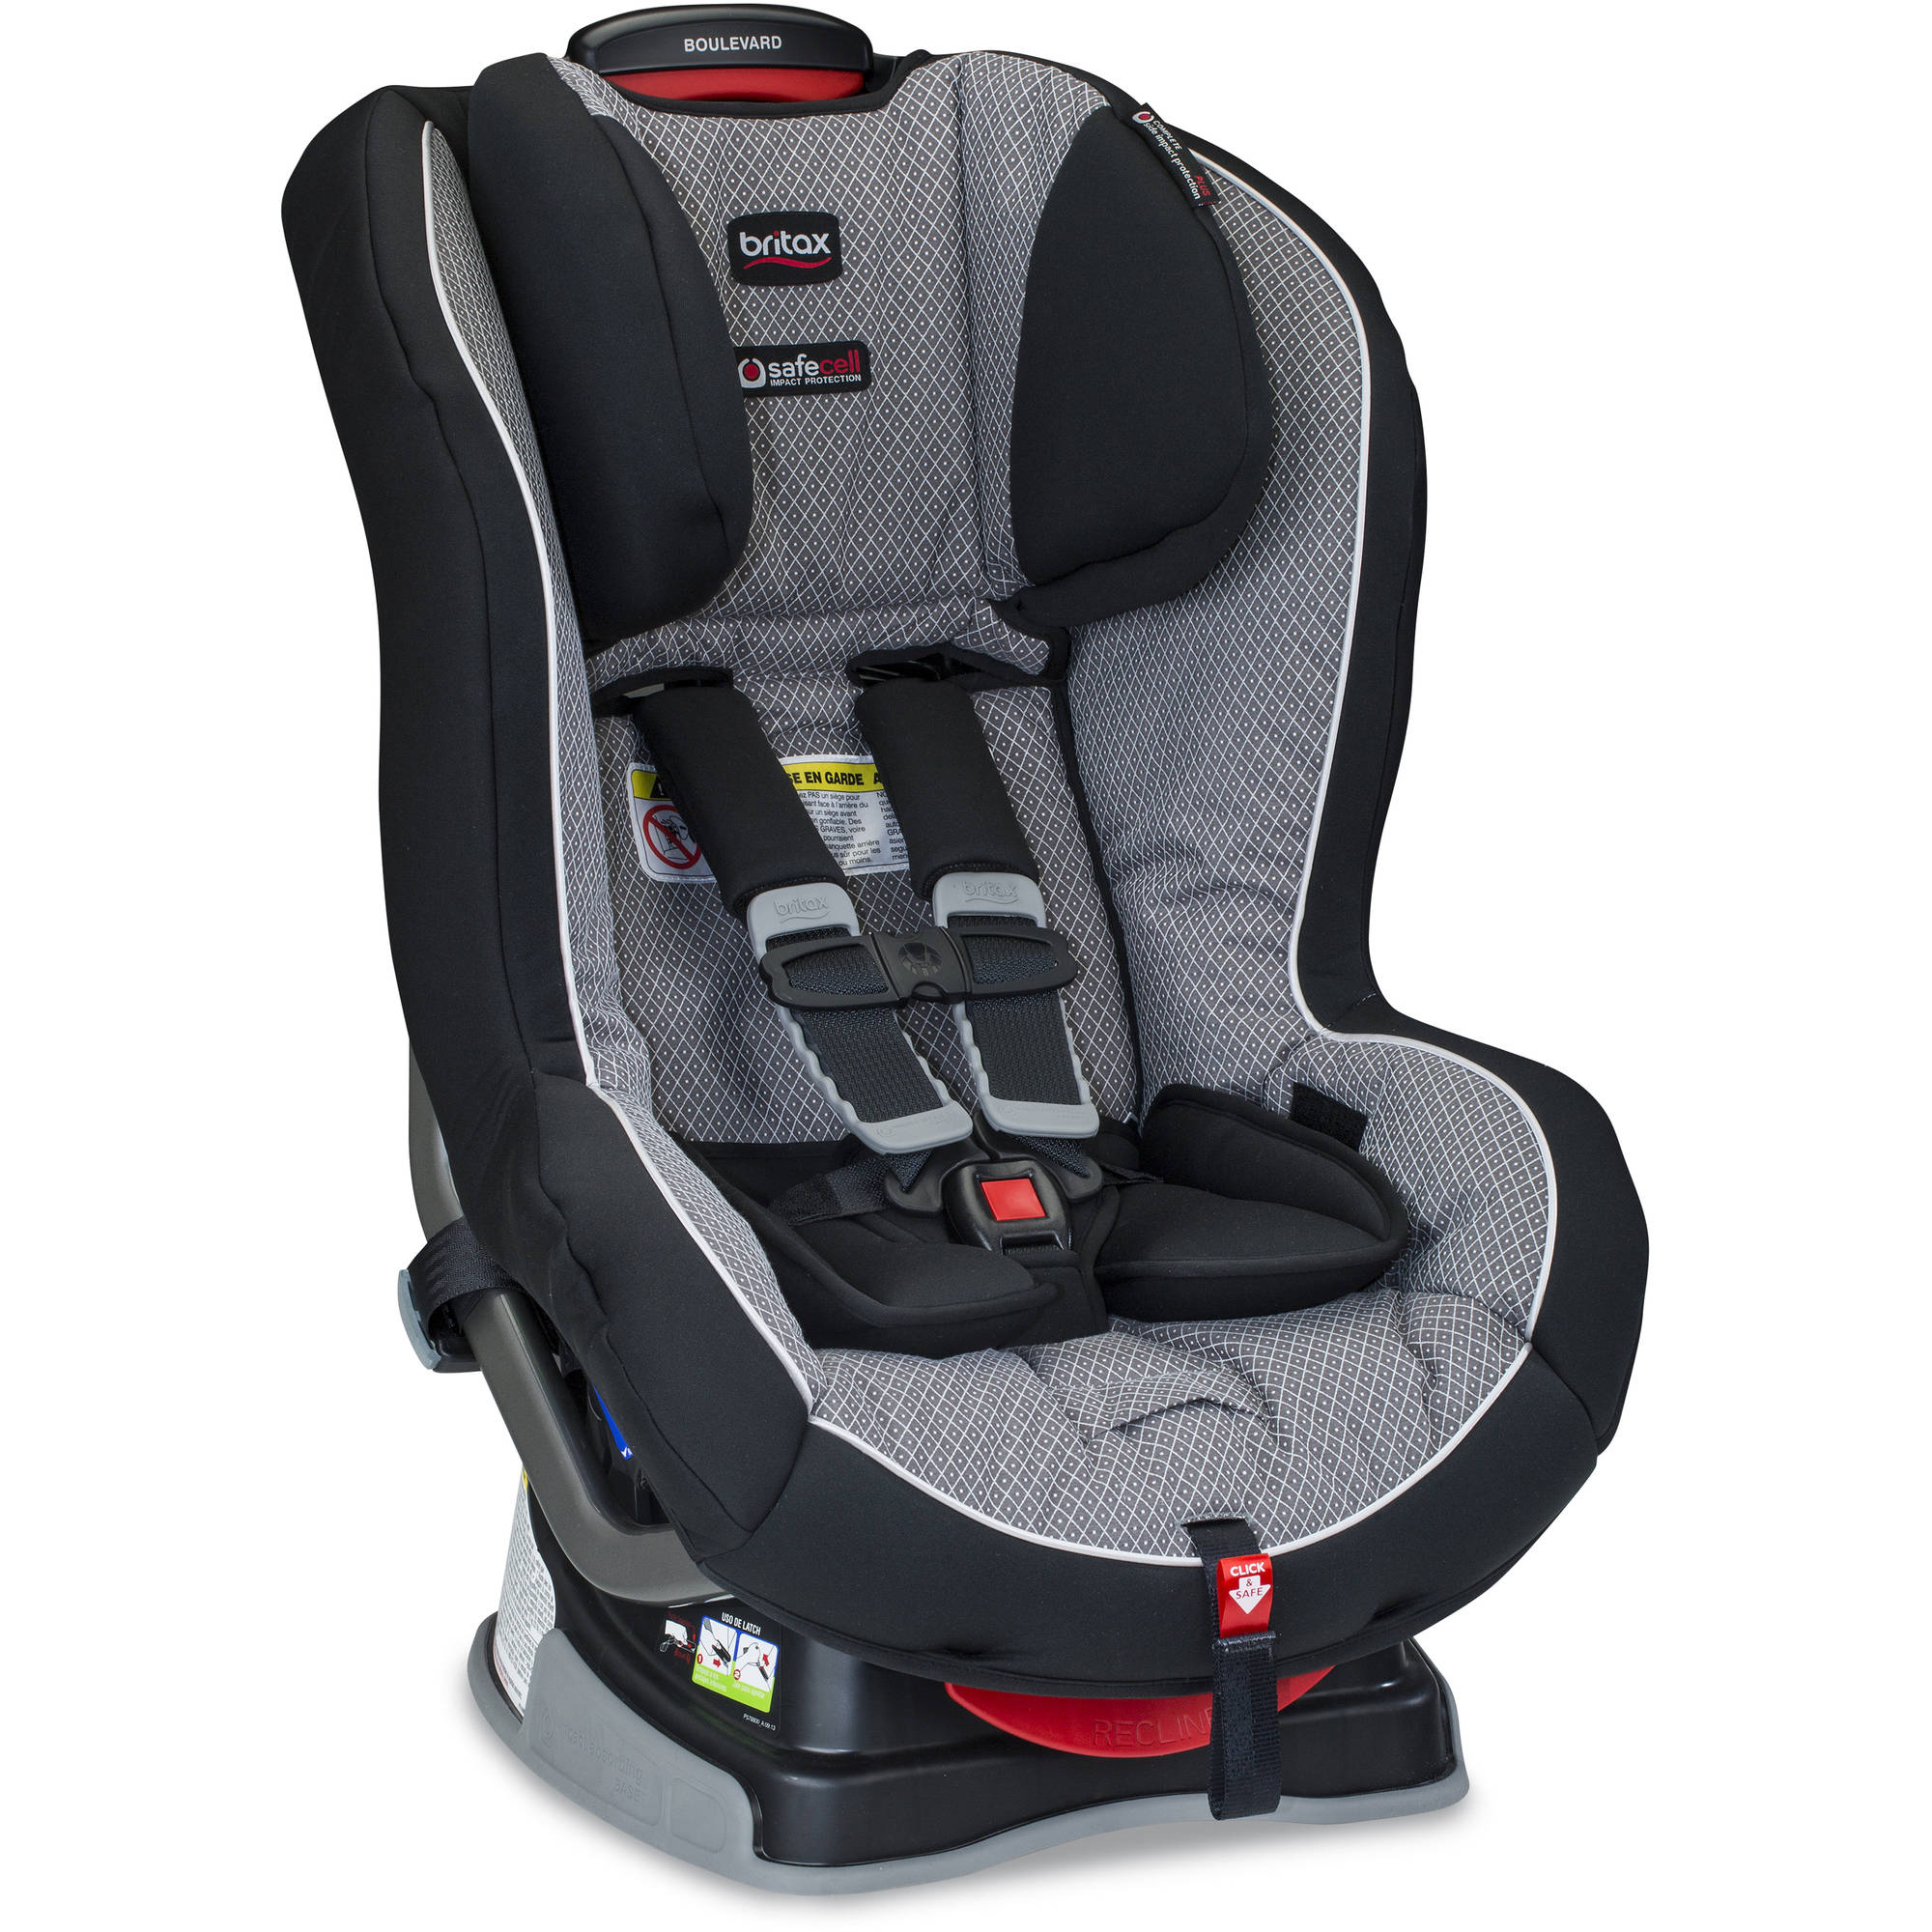 New Rear Facing Car Seat Law In California Should Save Children S